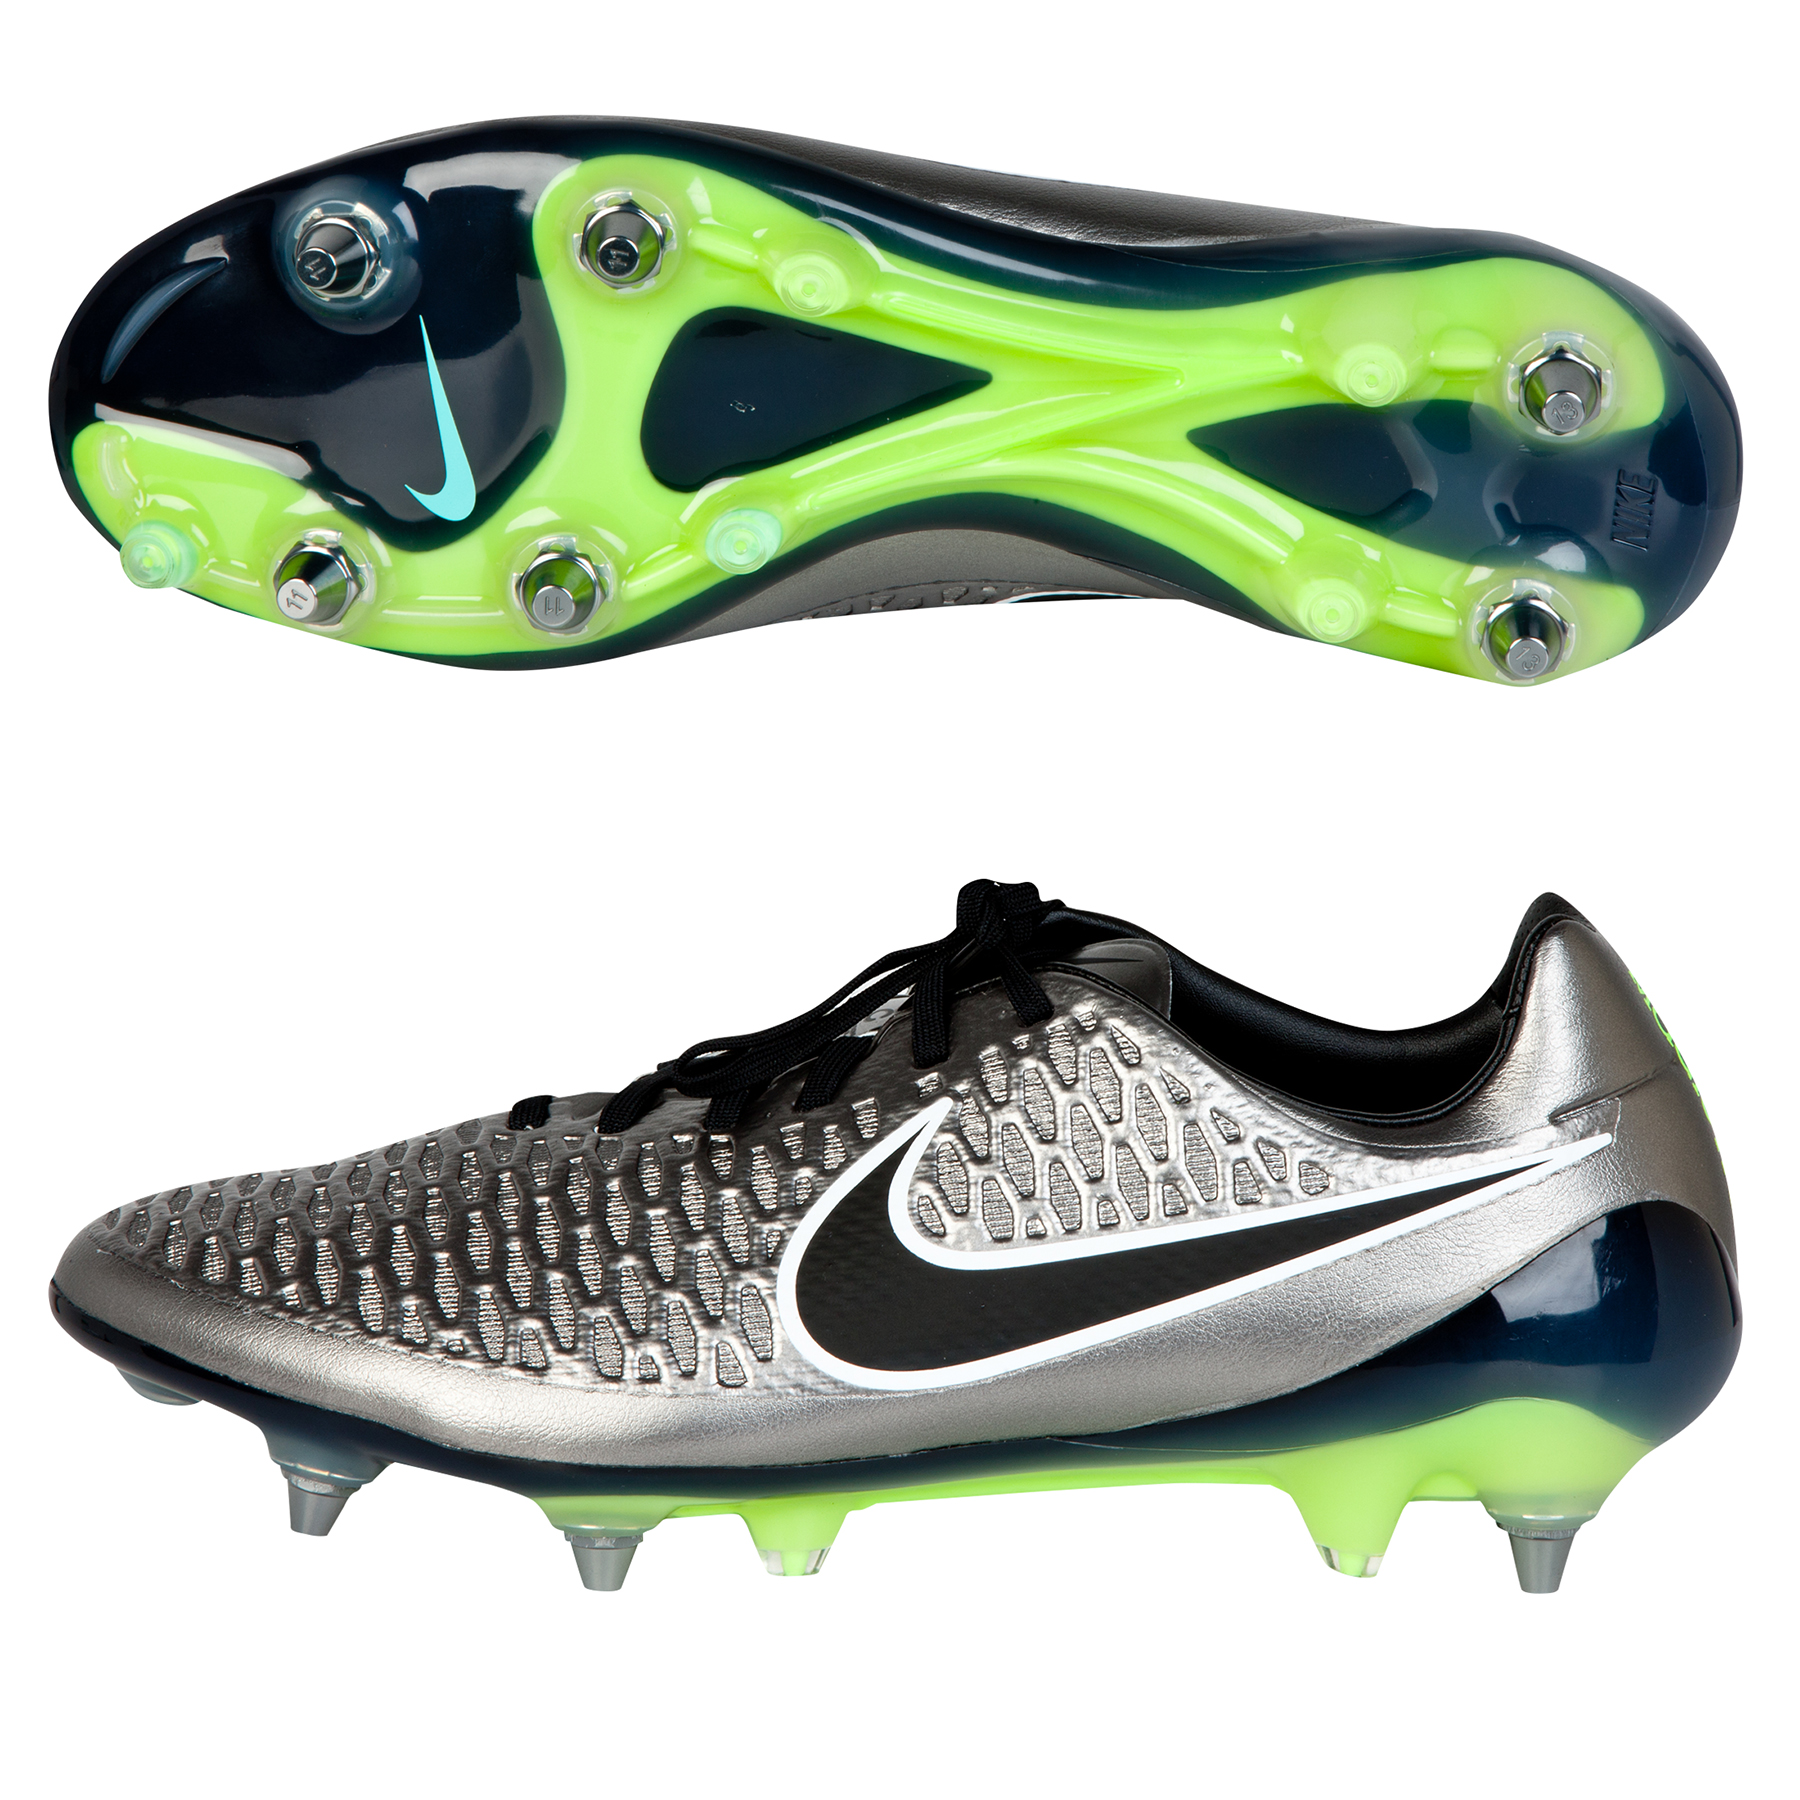 Buy Nike Magista Obra and Opus Rugby Boots - compare prices b4cd5b8b7